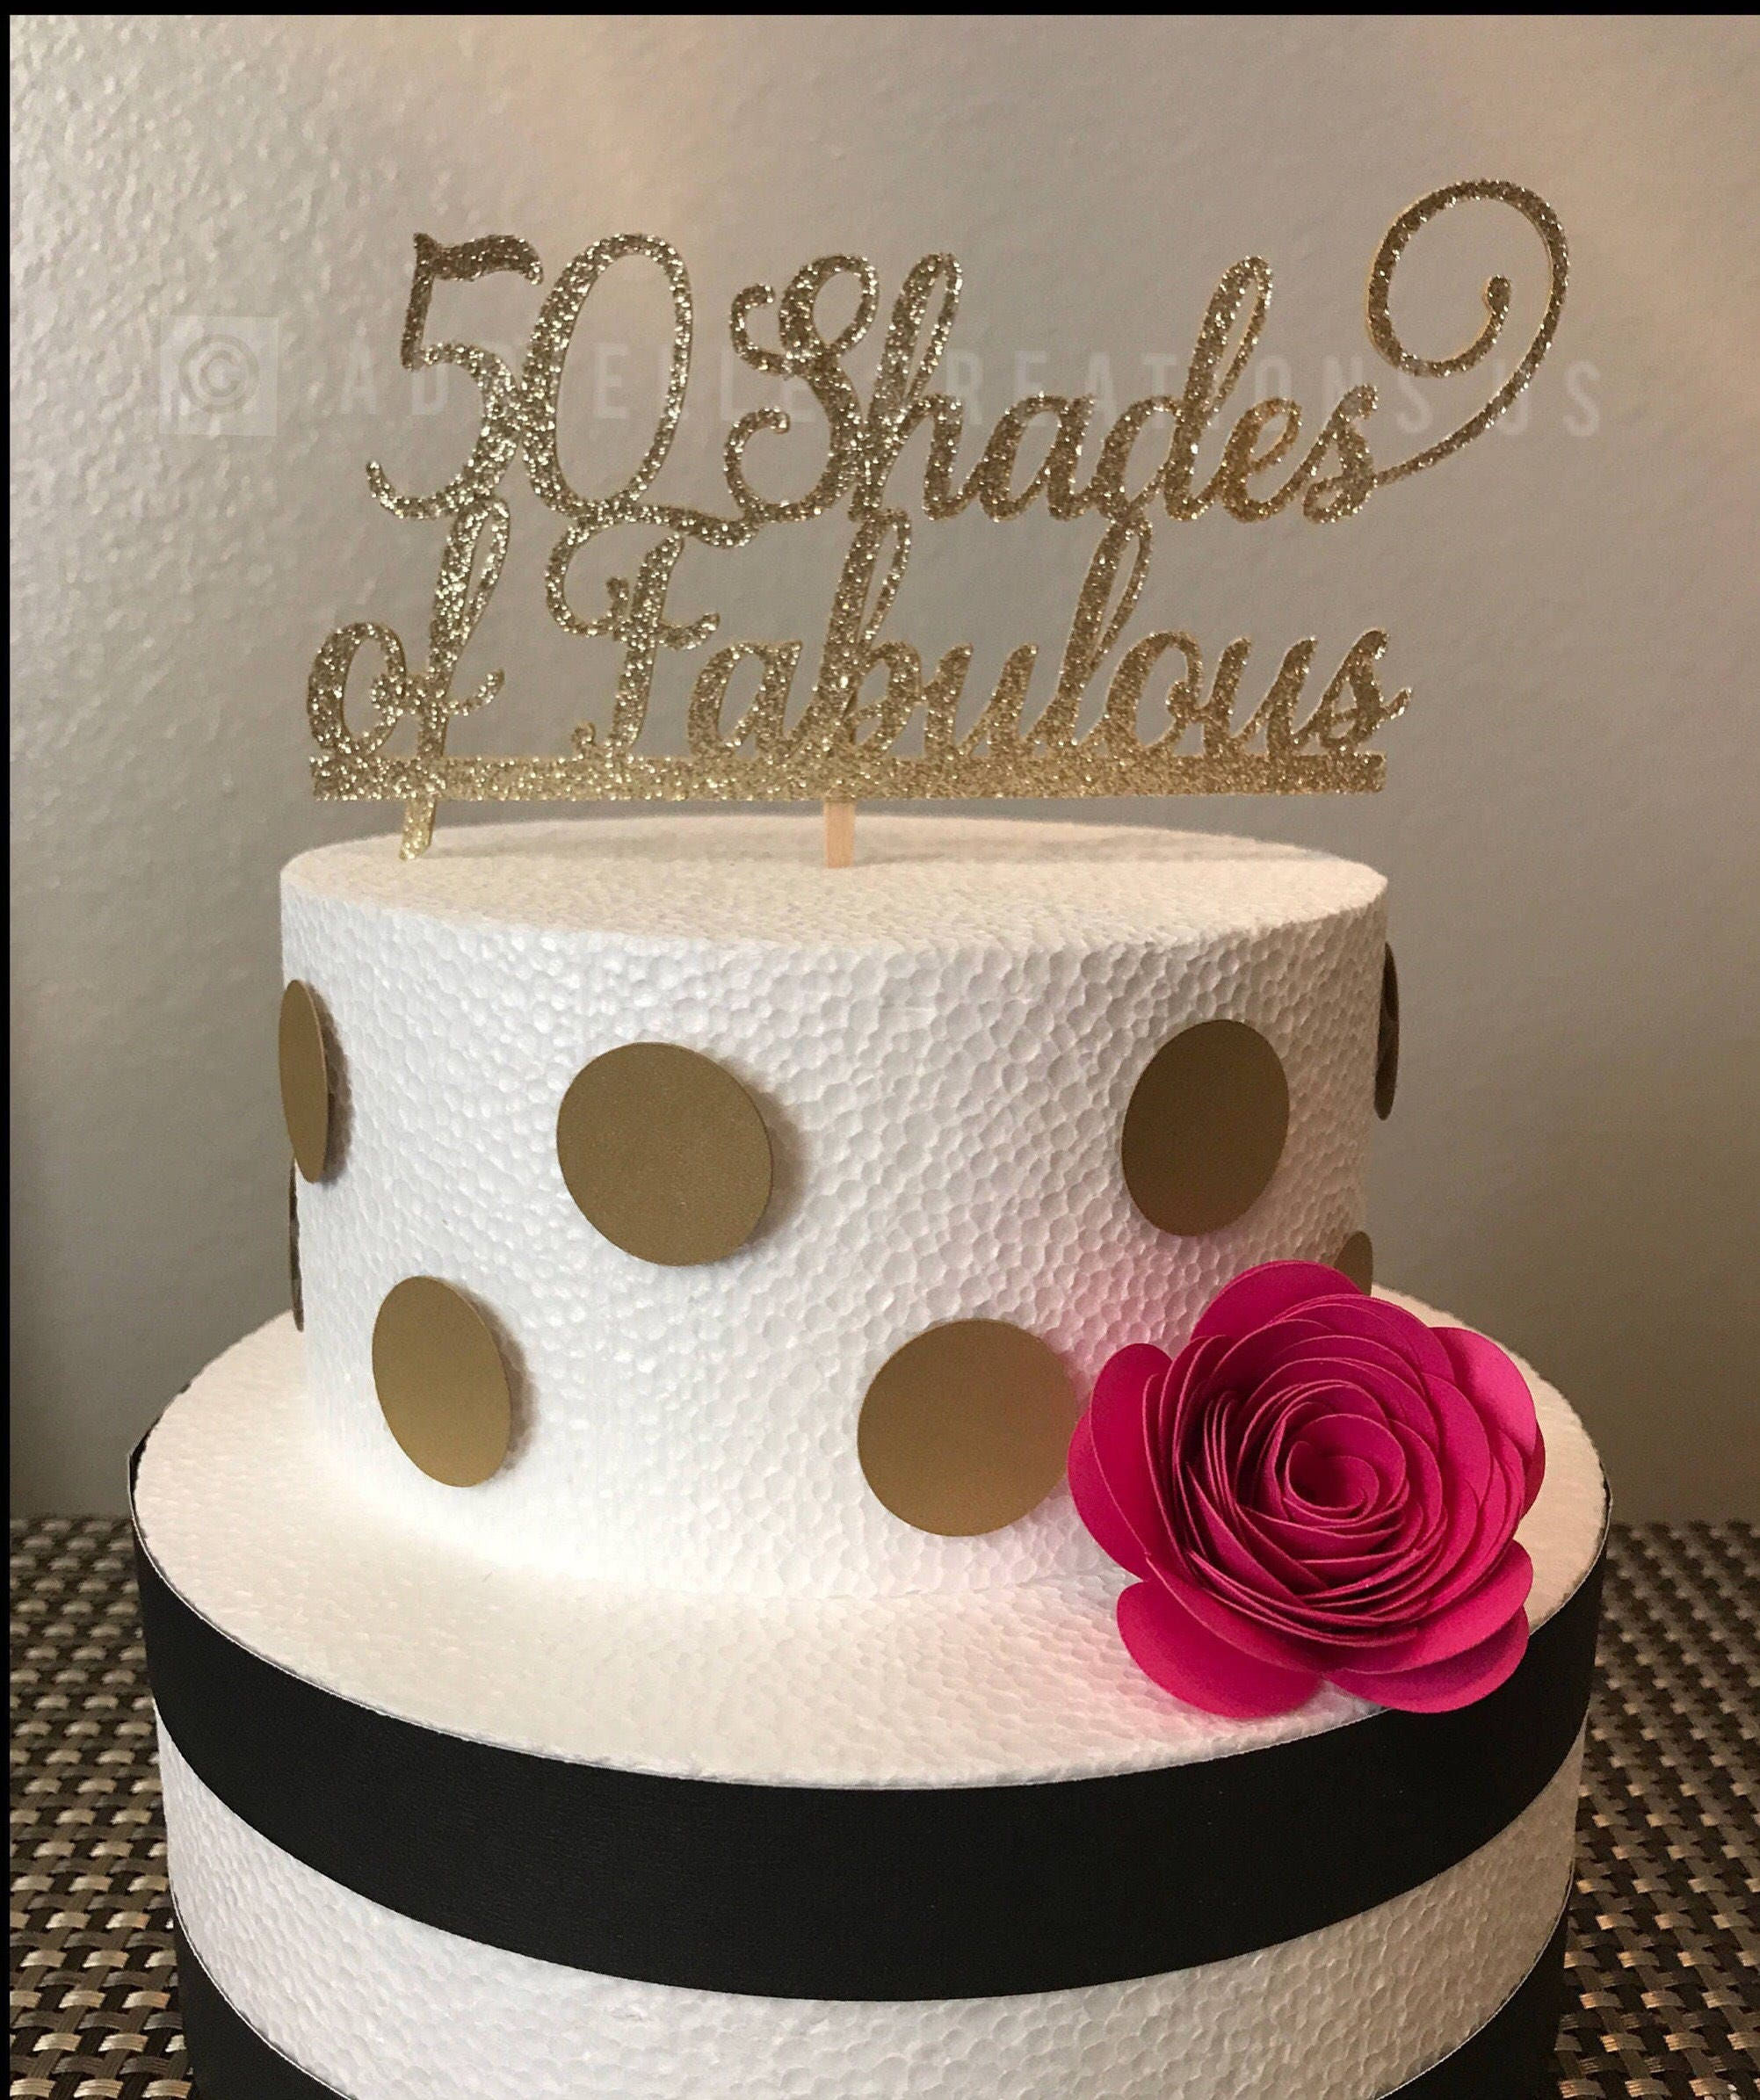 50 Shades of Fabulous Cake Topper Birthday or Anniversary available